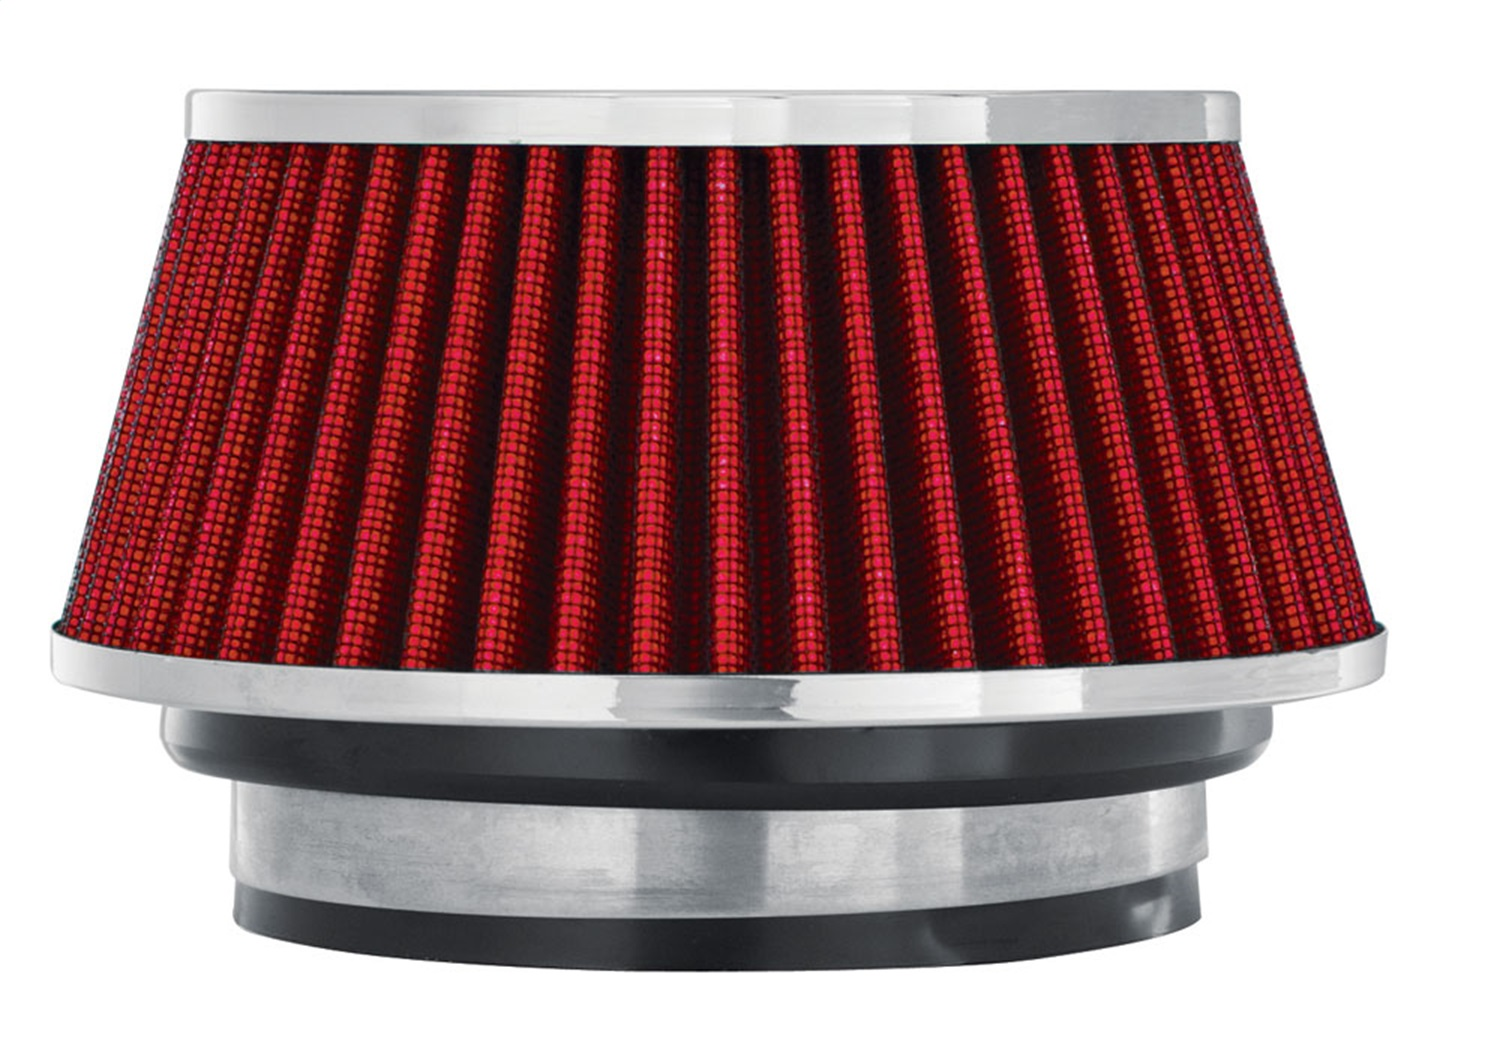 Spectre Performance 8162 Air Filter 8162